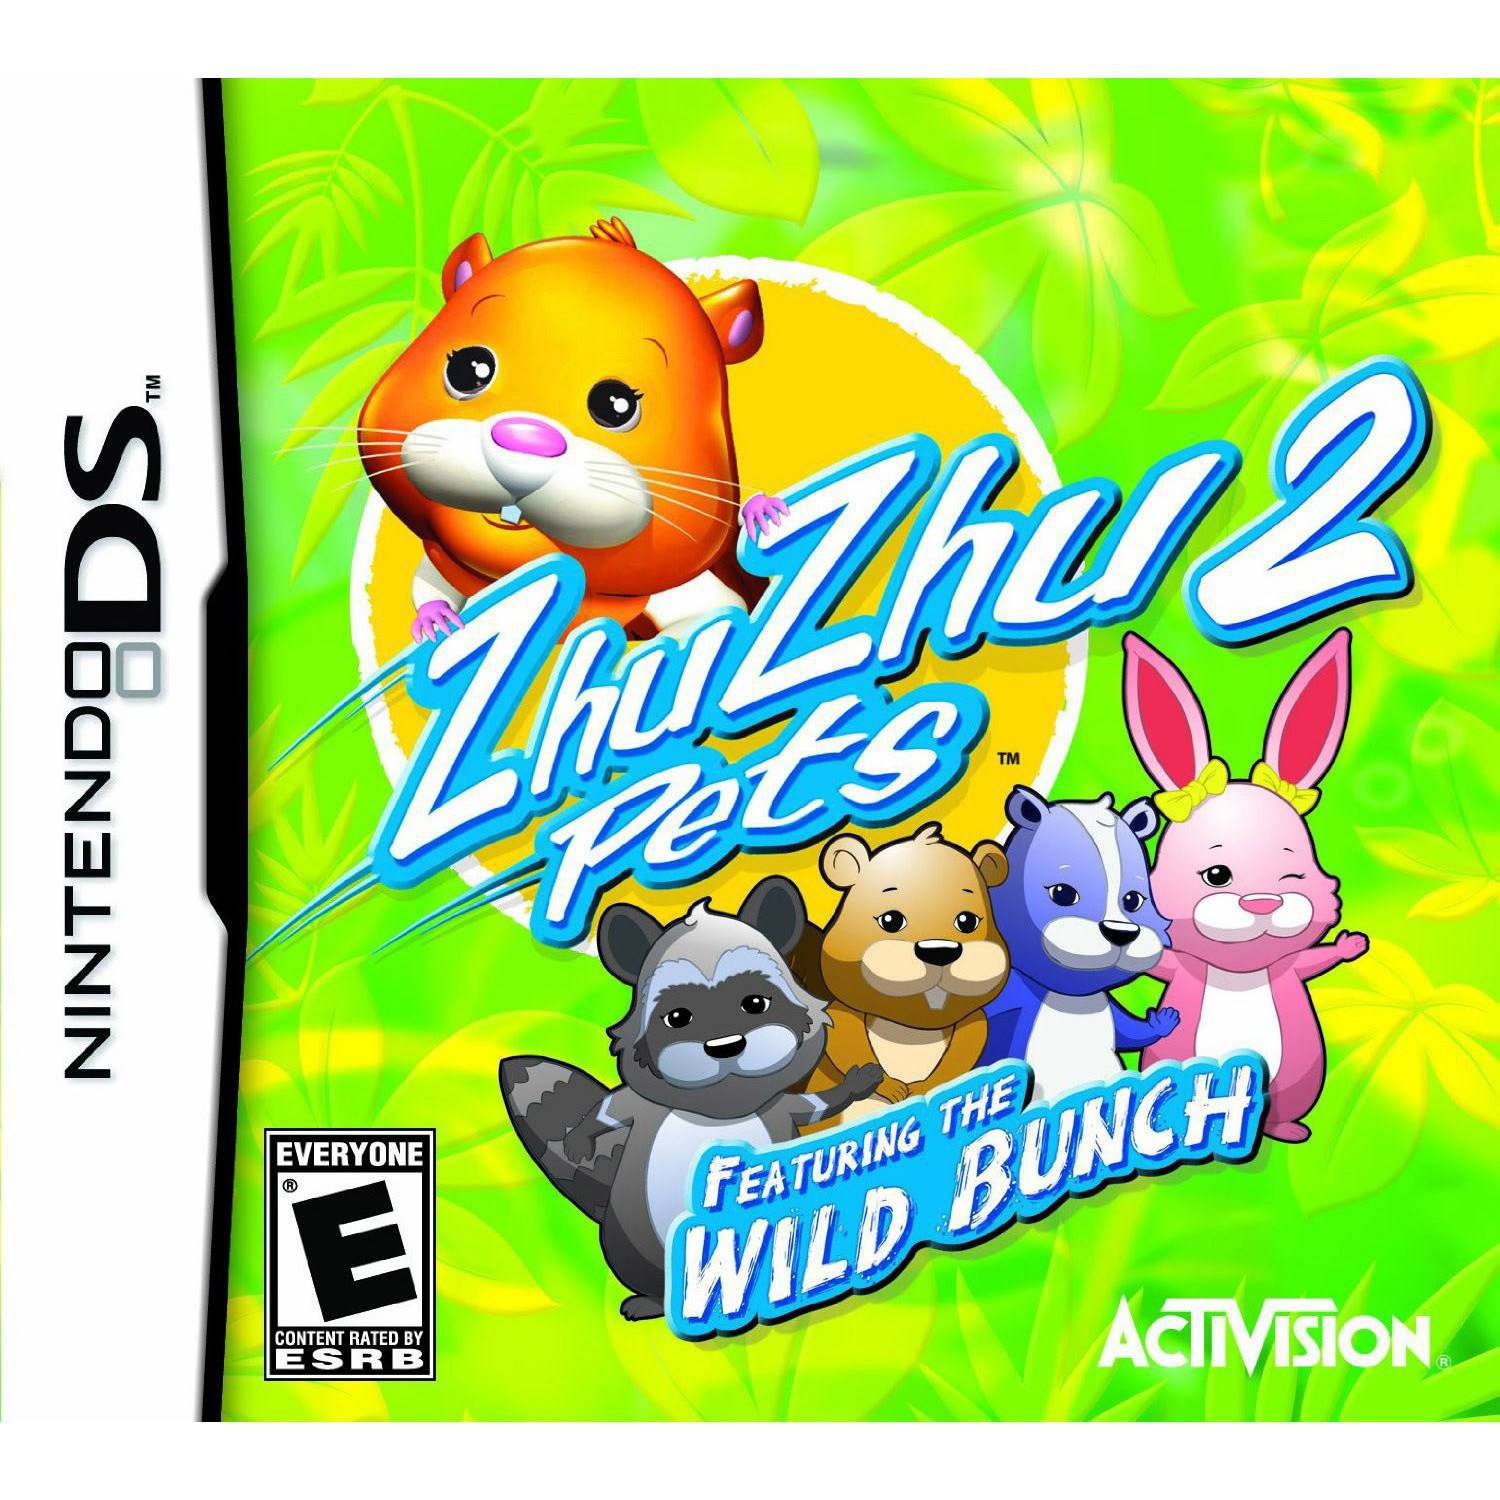 Zhu Zhu Pets: Wild Bunch (DS) - Pre-Owned - Game Only